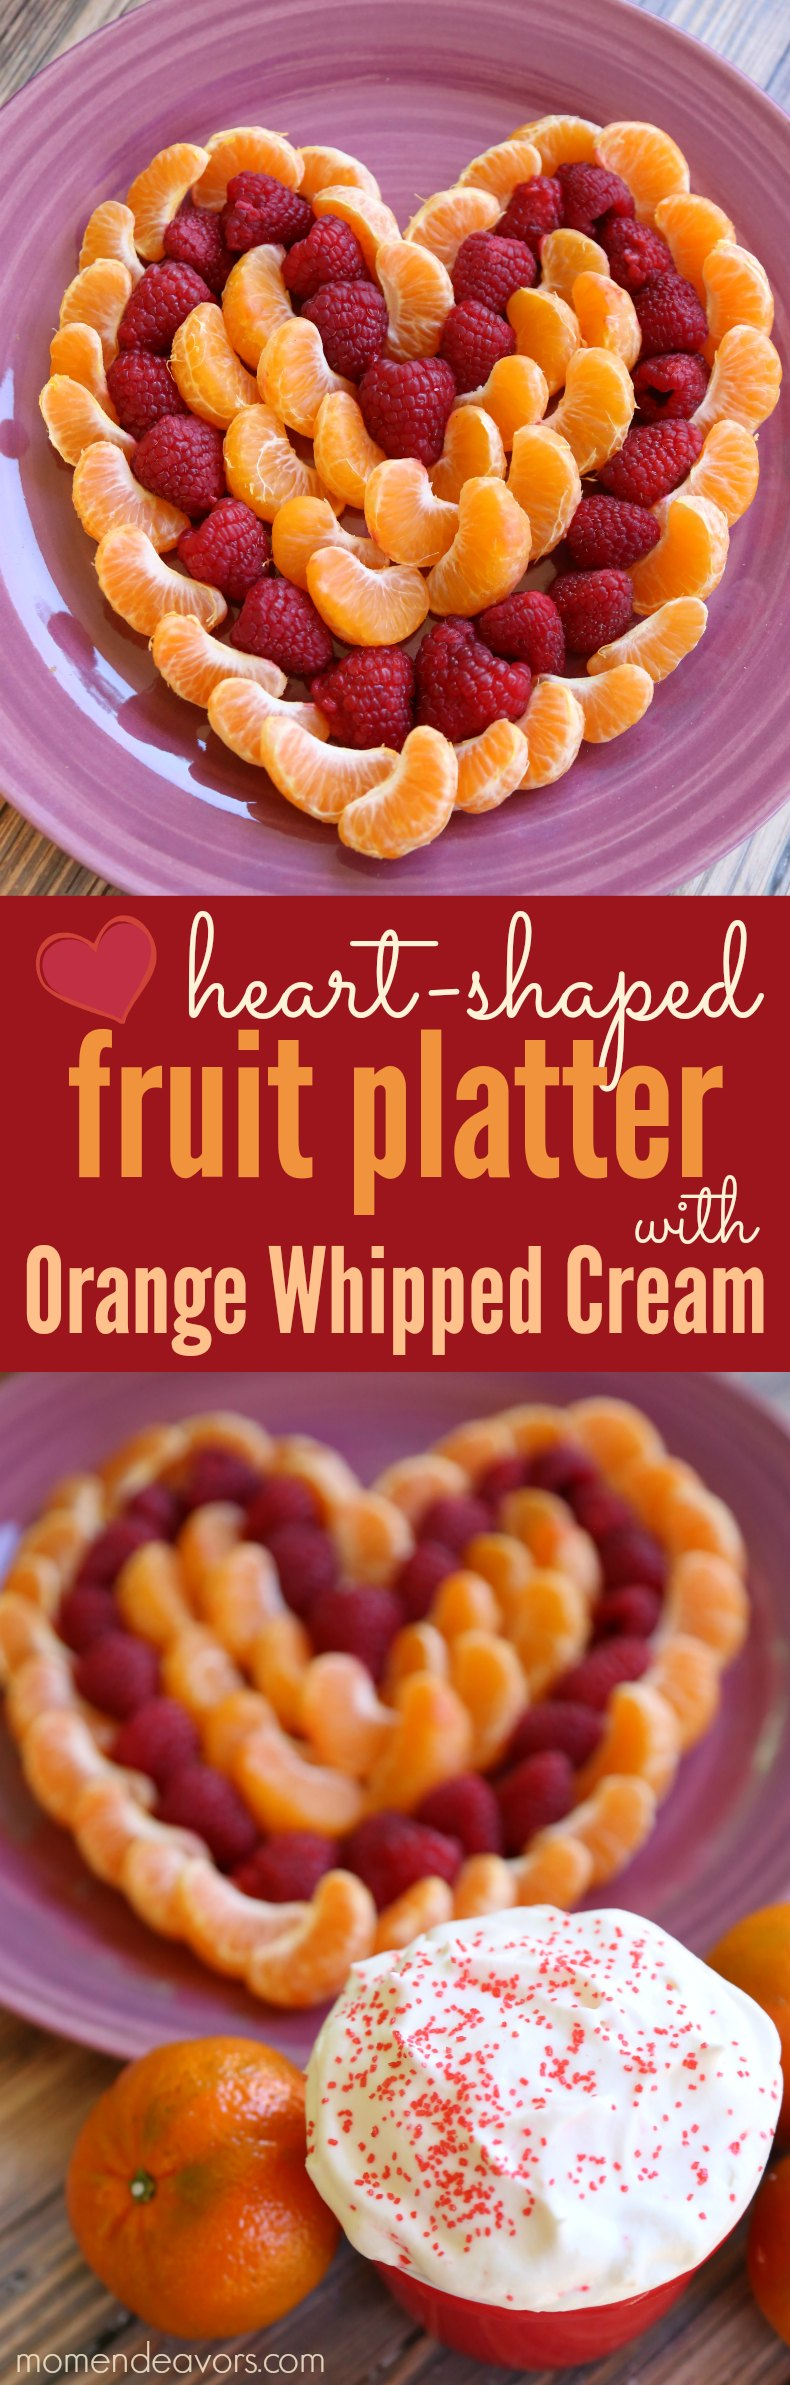 Heart-Shaped Fruit Platter with Orange Whipped Cream